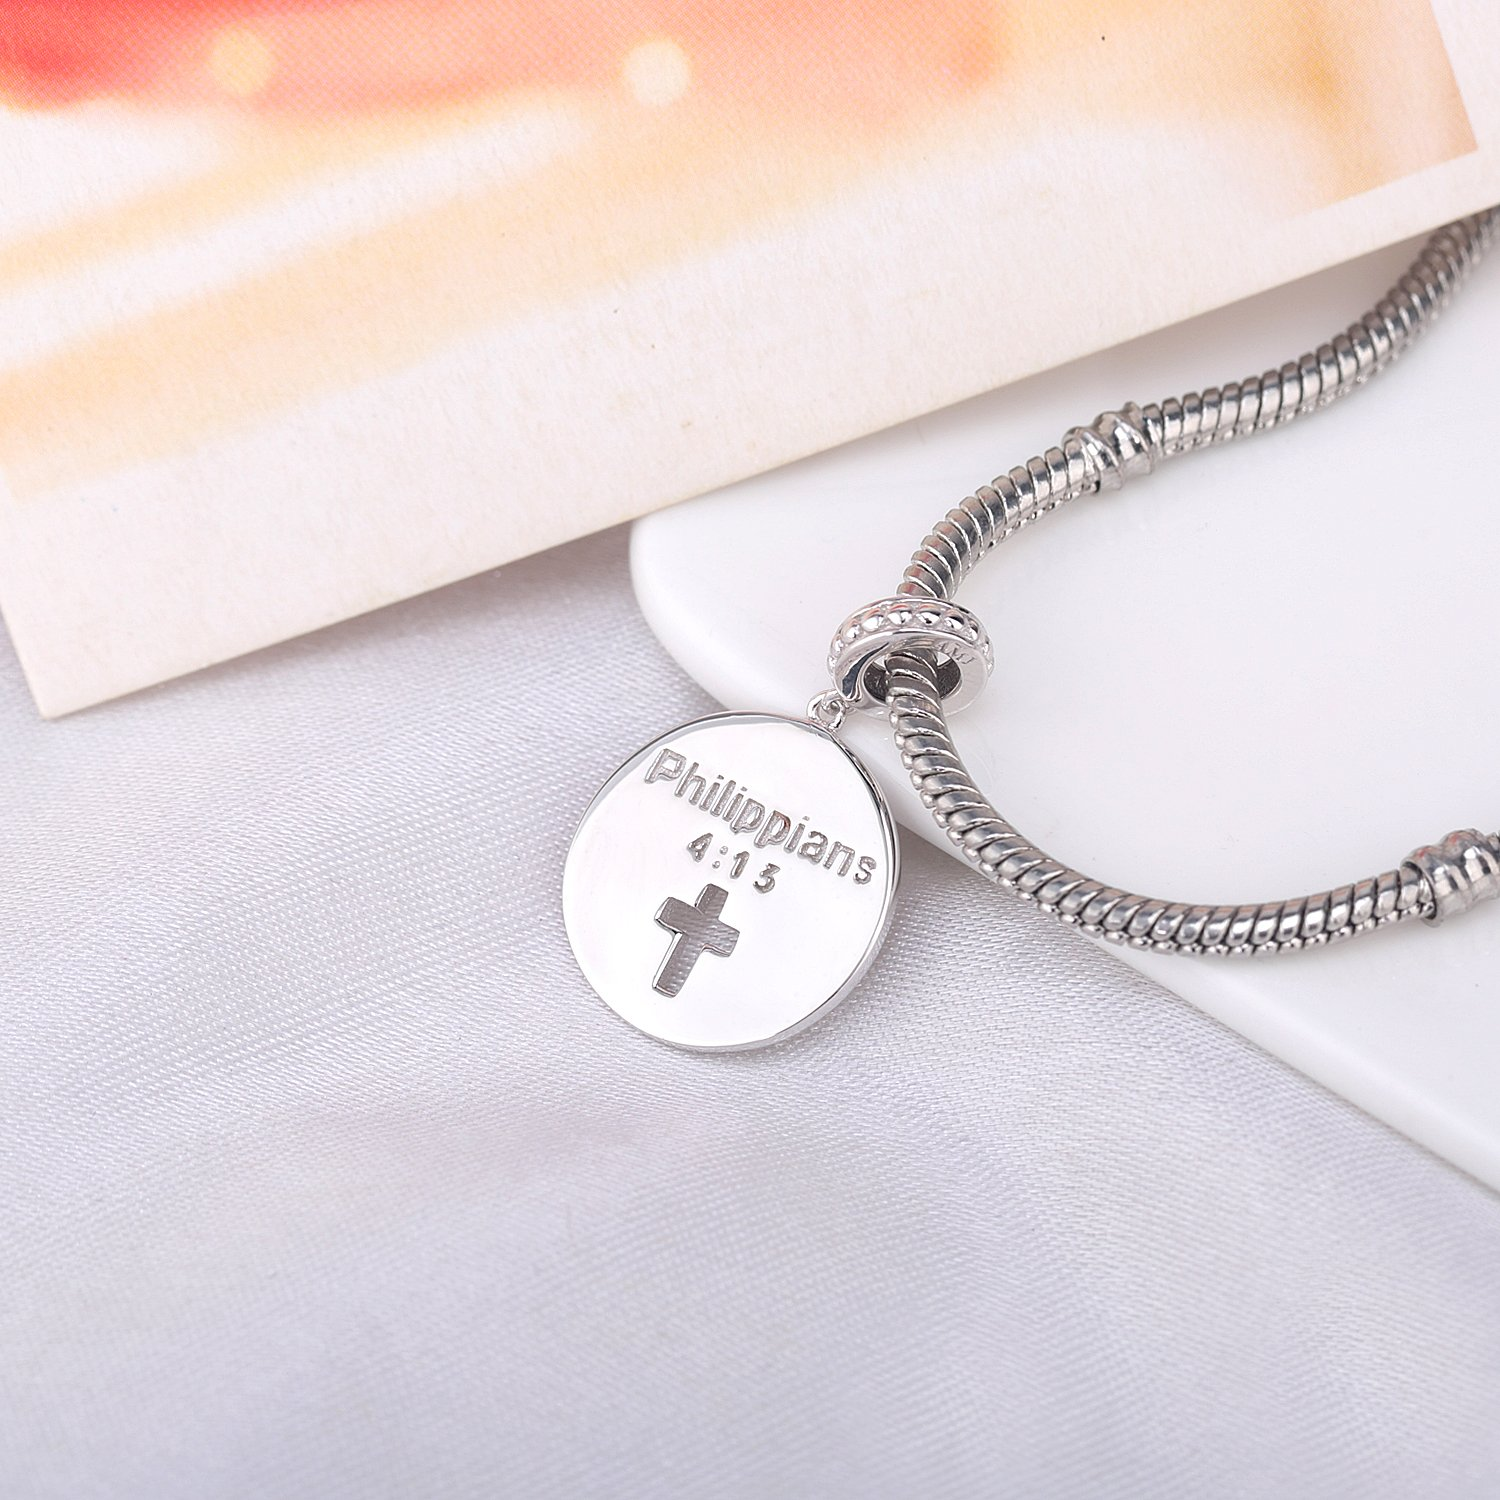 925-Sterling-Silver-Pendant-Necklace-I-Can-Do-all-Things-Through-Christ-who-Strengthen-Me-Religion-Jewelry-18-Chain